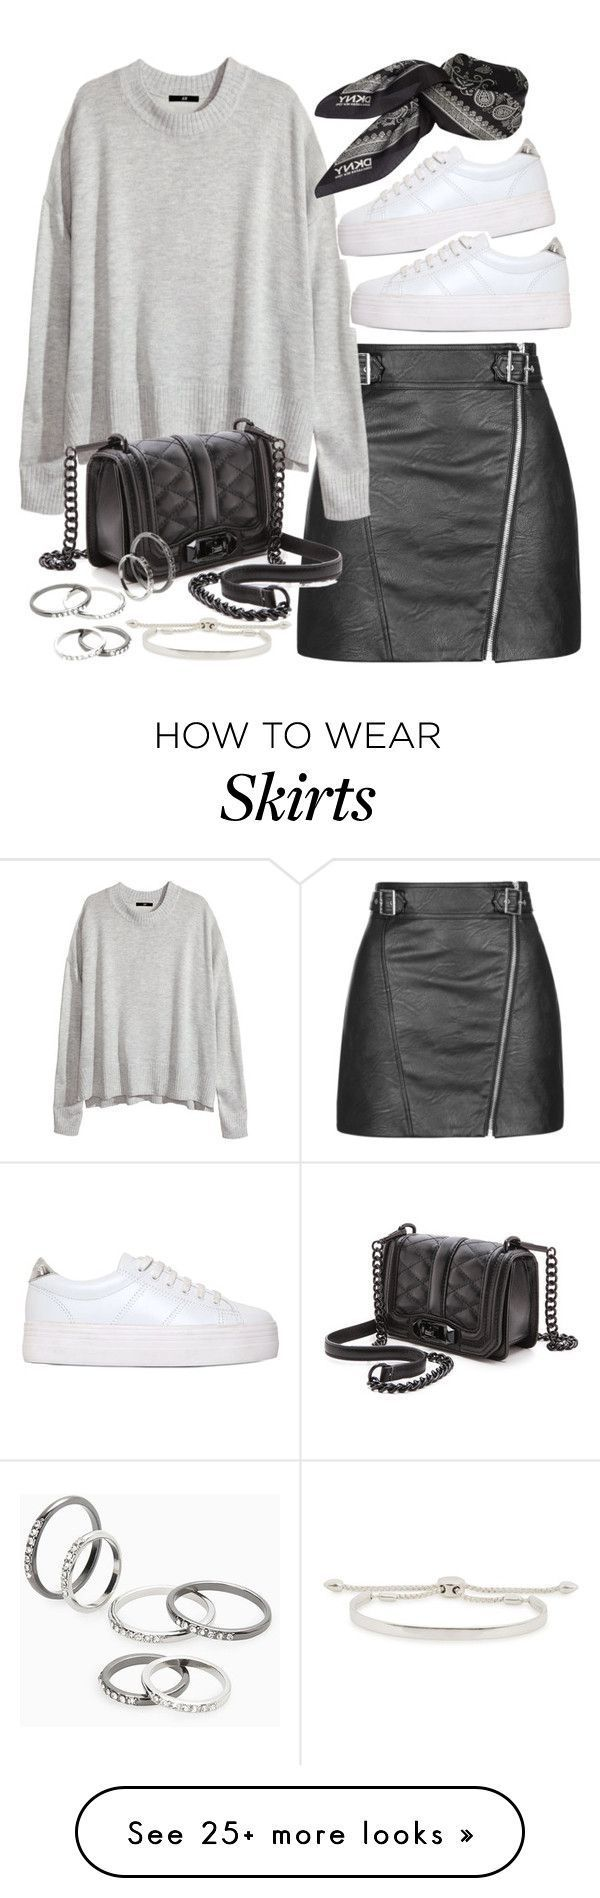 """Tendance Basket 2017  """"Outfit with white sneakers and a faux leather skirt"""" by ferned on Pol"""